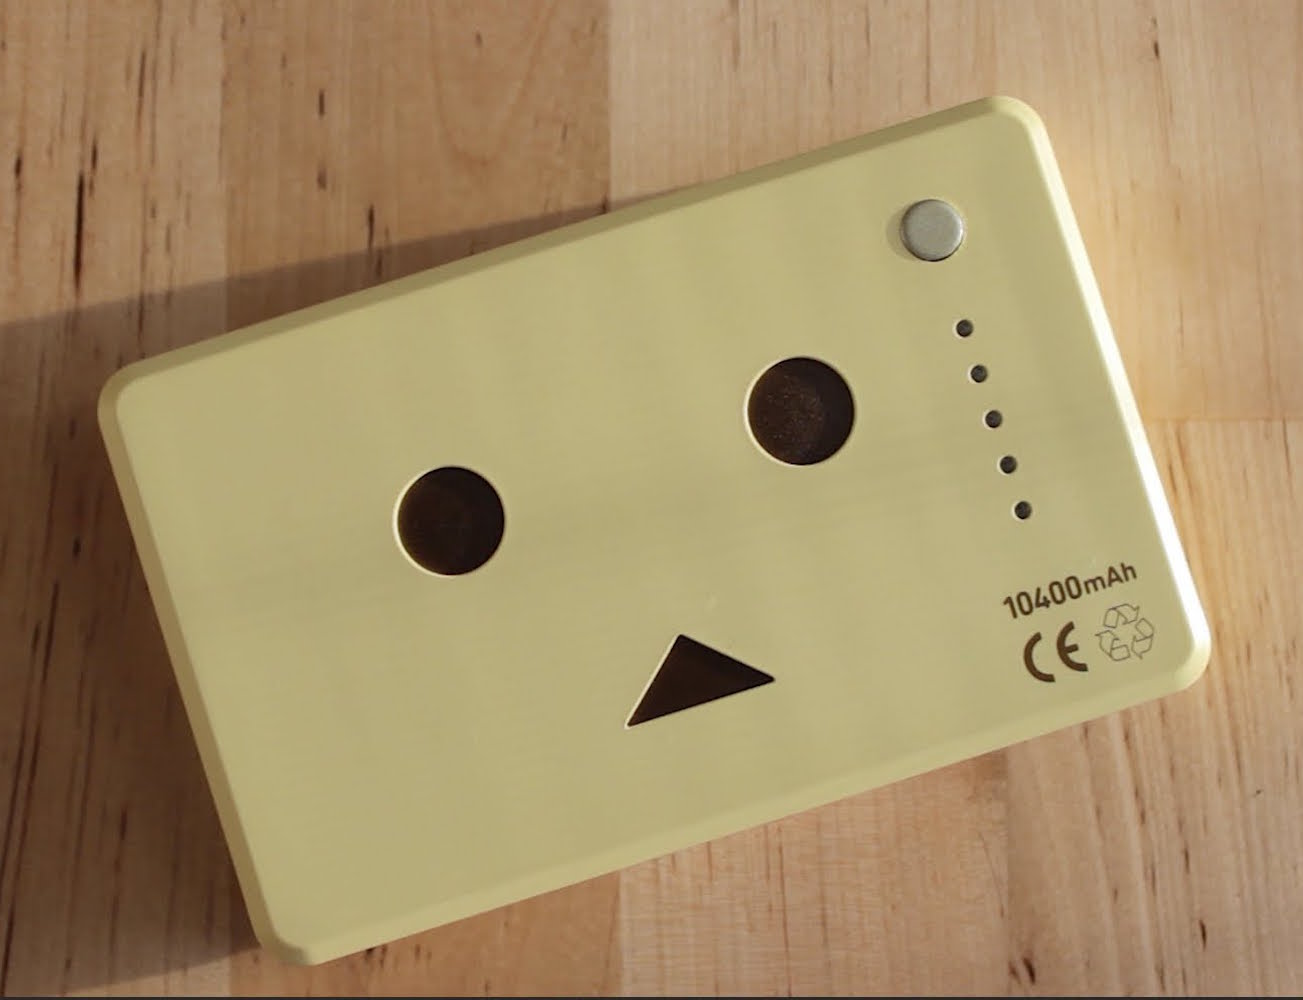 Power Plus DANBOARD External Battery Pack by cheero